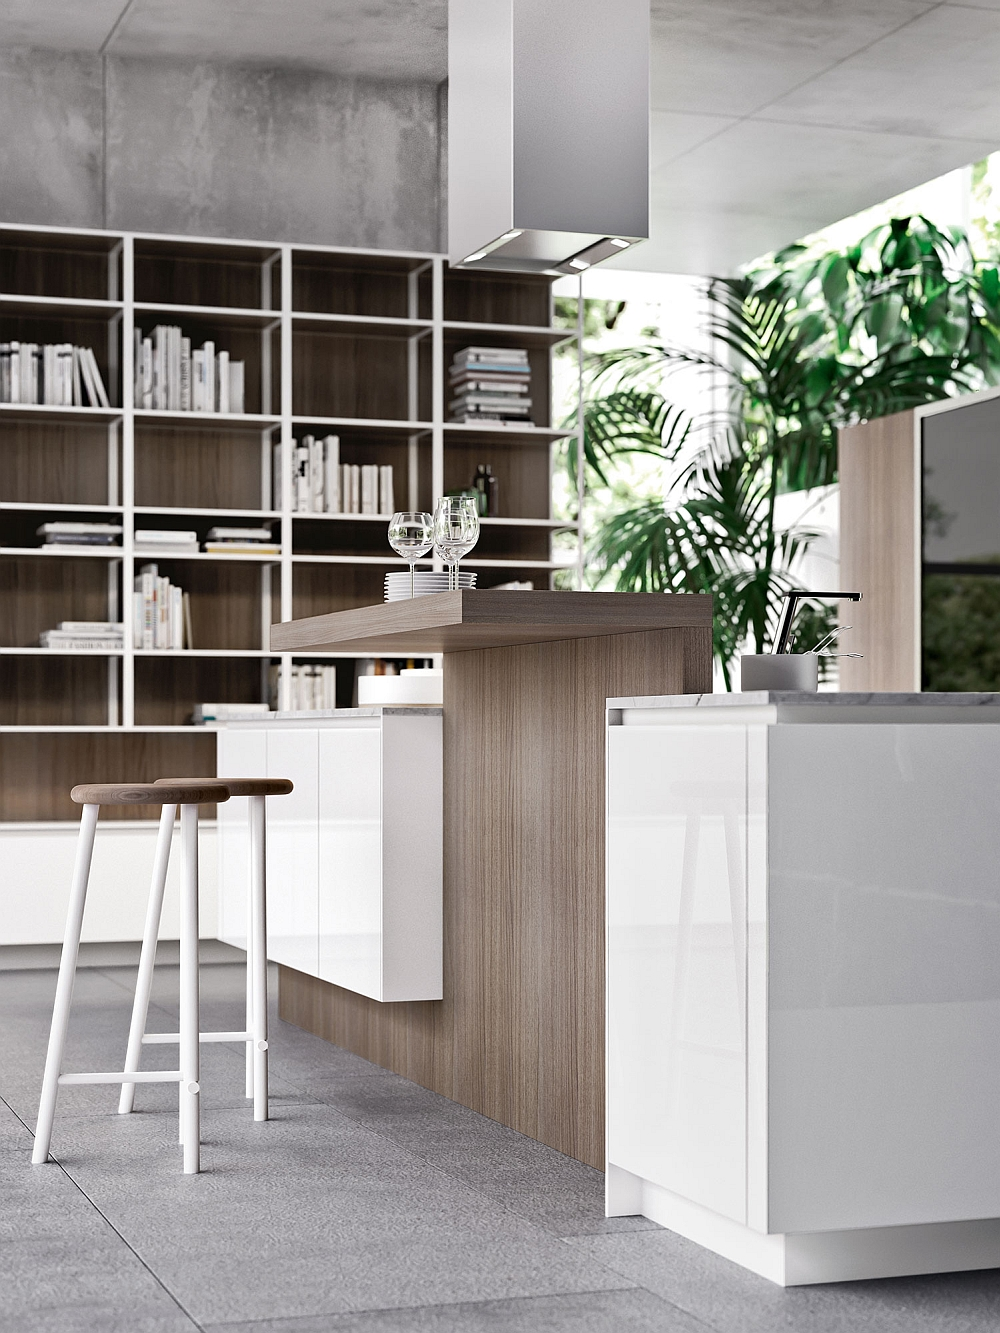 Creative design solutions give the WAY Kitchen plenty of adaptability